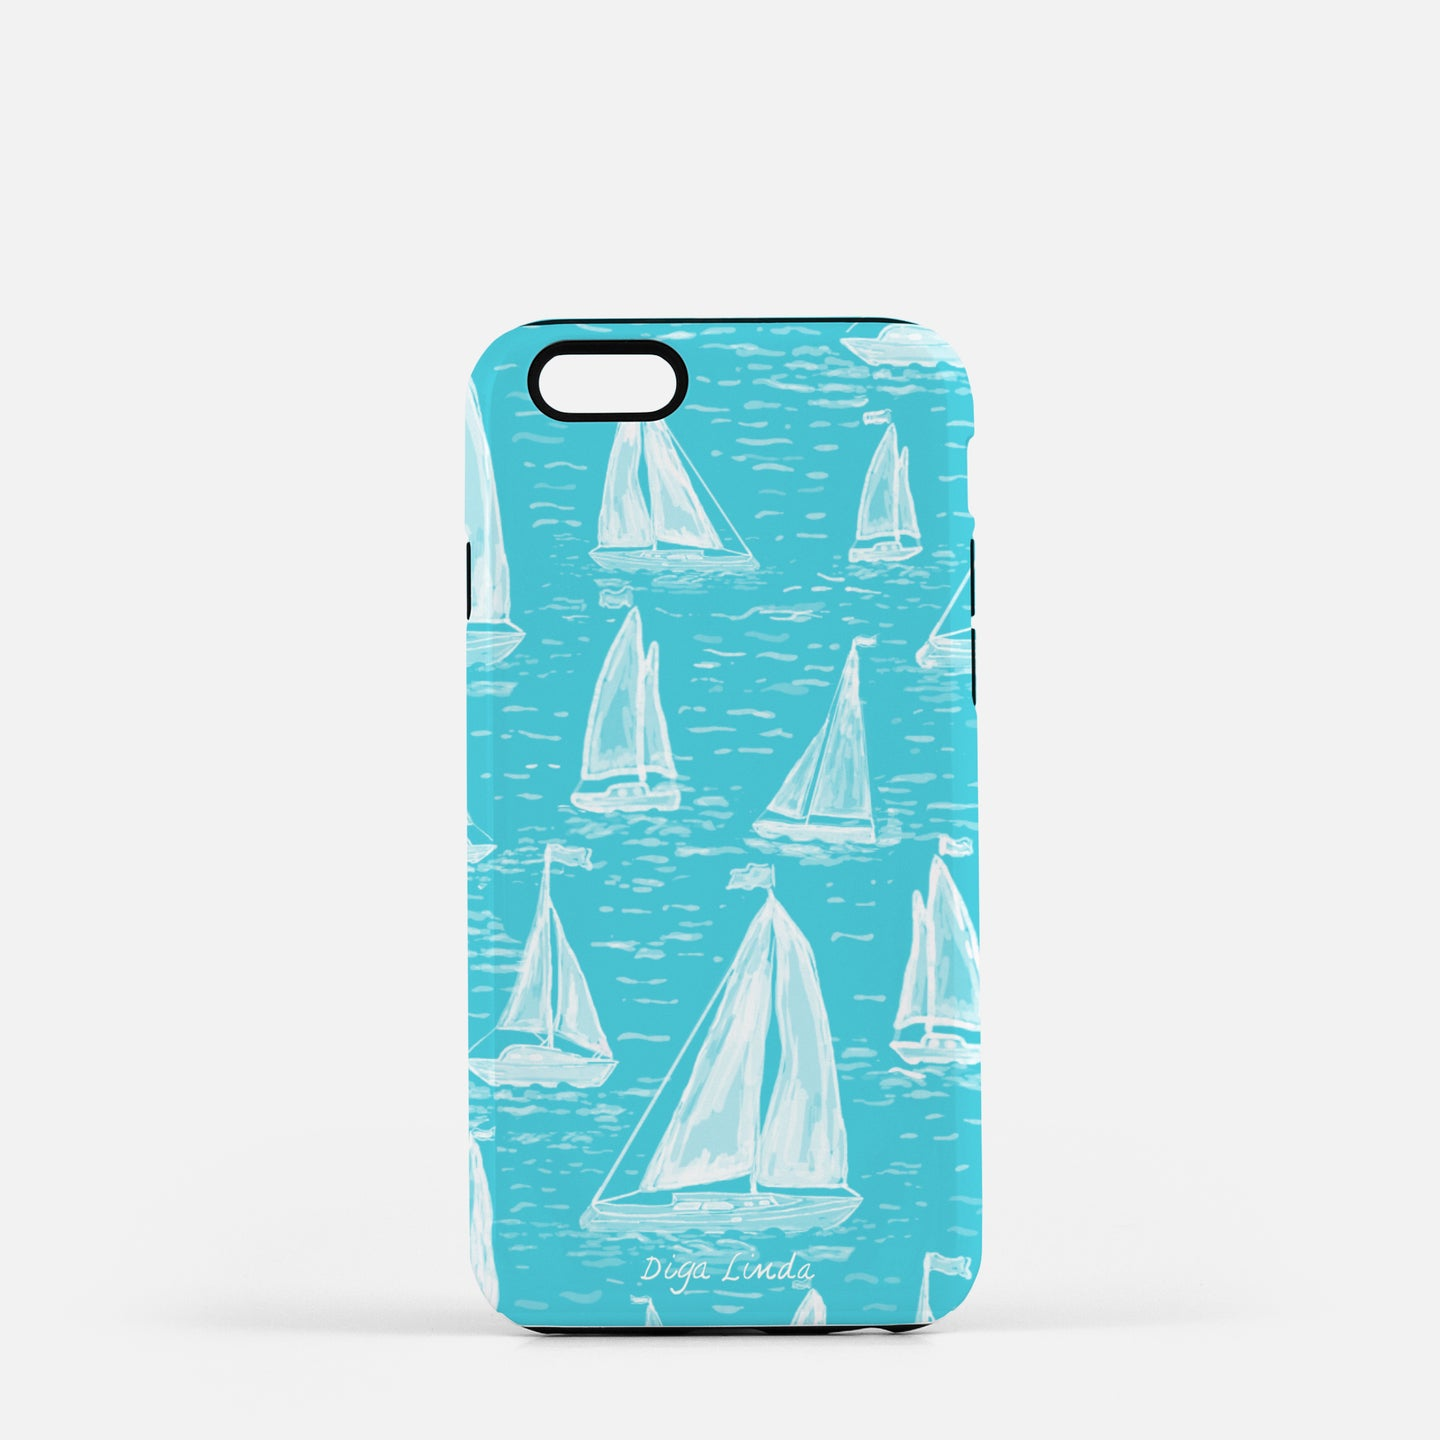 Tough Phone Case The Explorer In Aqua print - Diga Linda